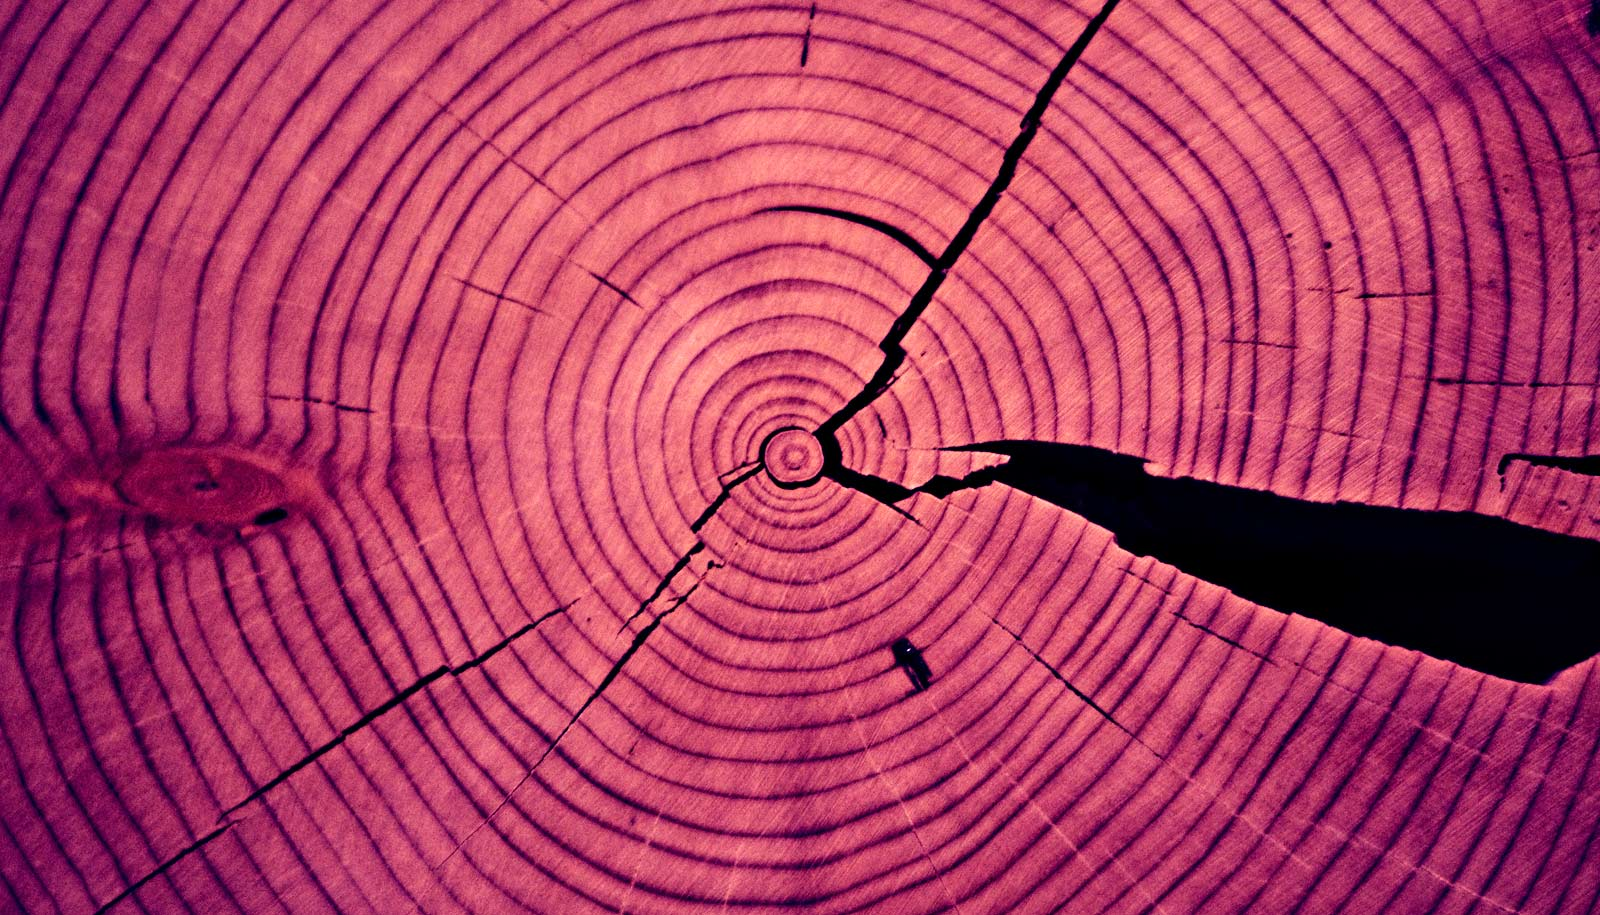 Tree ring warning: Forests may not be able to save us